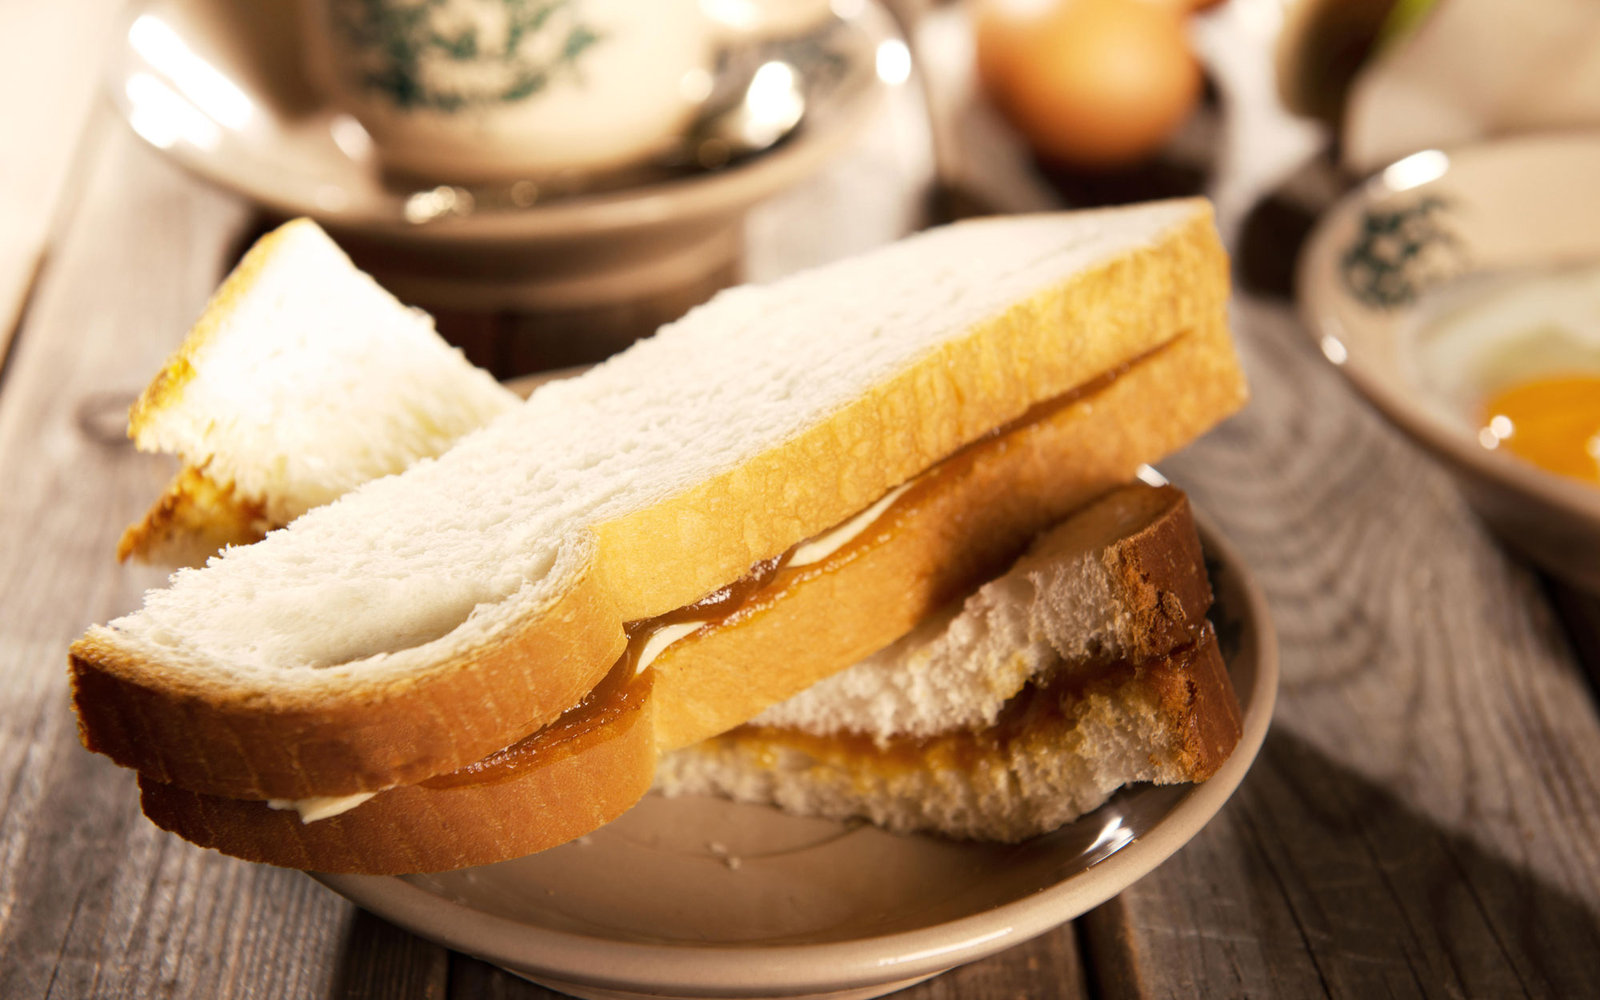 hangover-cures-singapore-kaya-toast-cured1215.jpg